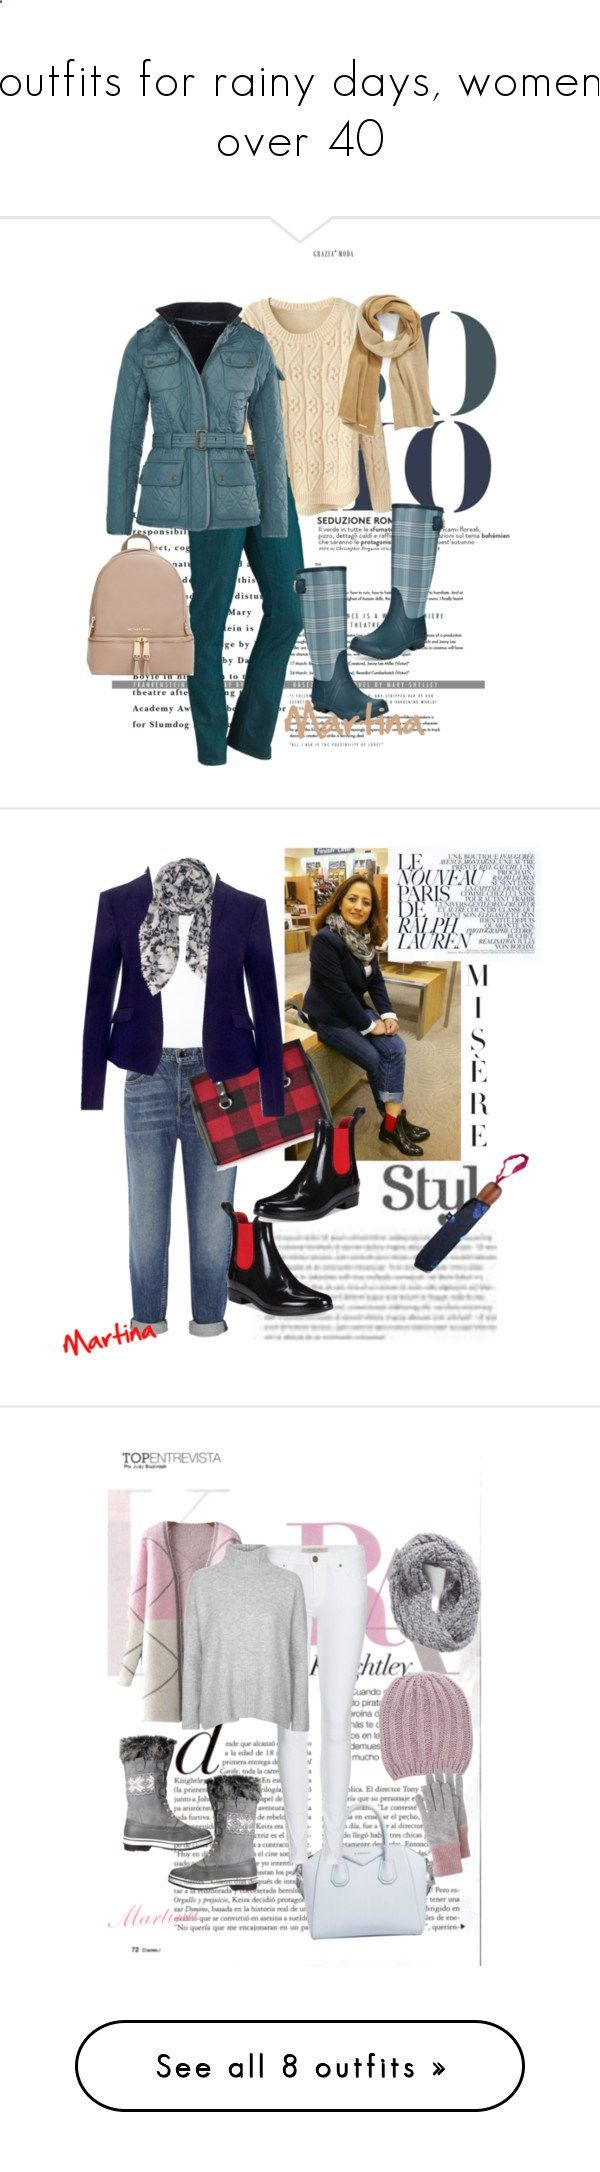 outfits for rainy days, women over 40 by martina-nossa on Polyvore featuring Marmot, MICHAEL Michael Kors, Barbour International, Tommy Hilfiger, Max n Chester, Alexander Wang, BeckSöndergaard, Ralph Lauren, Dsquared2 and Joules